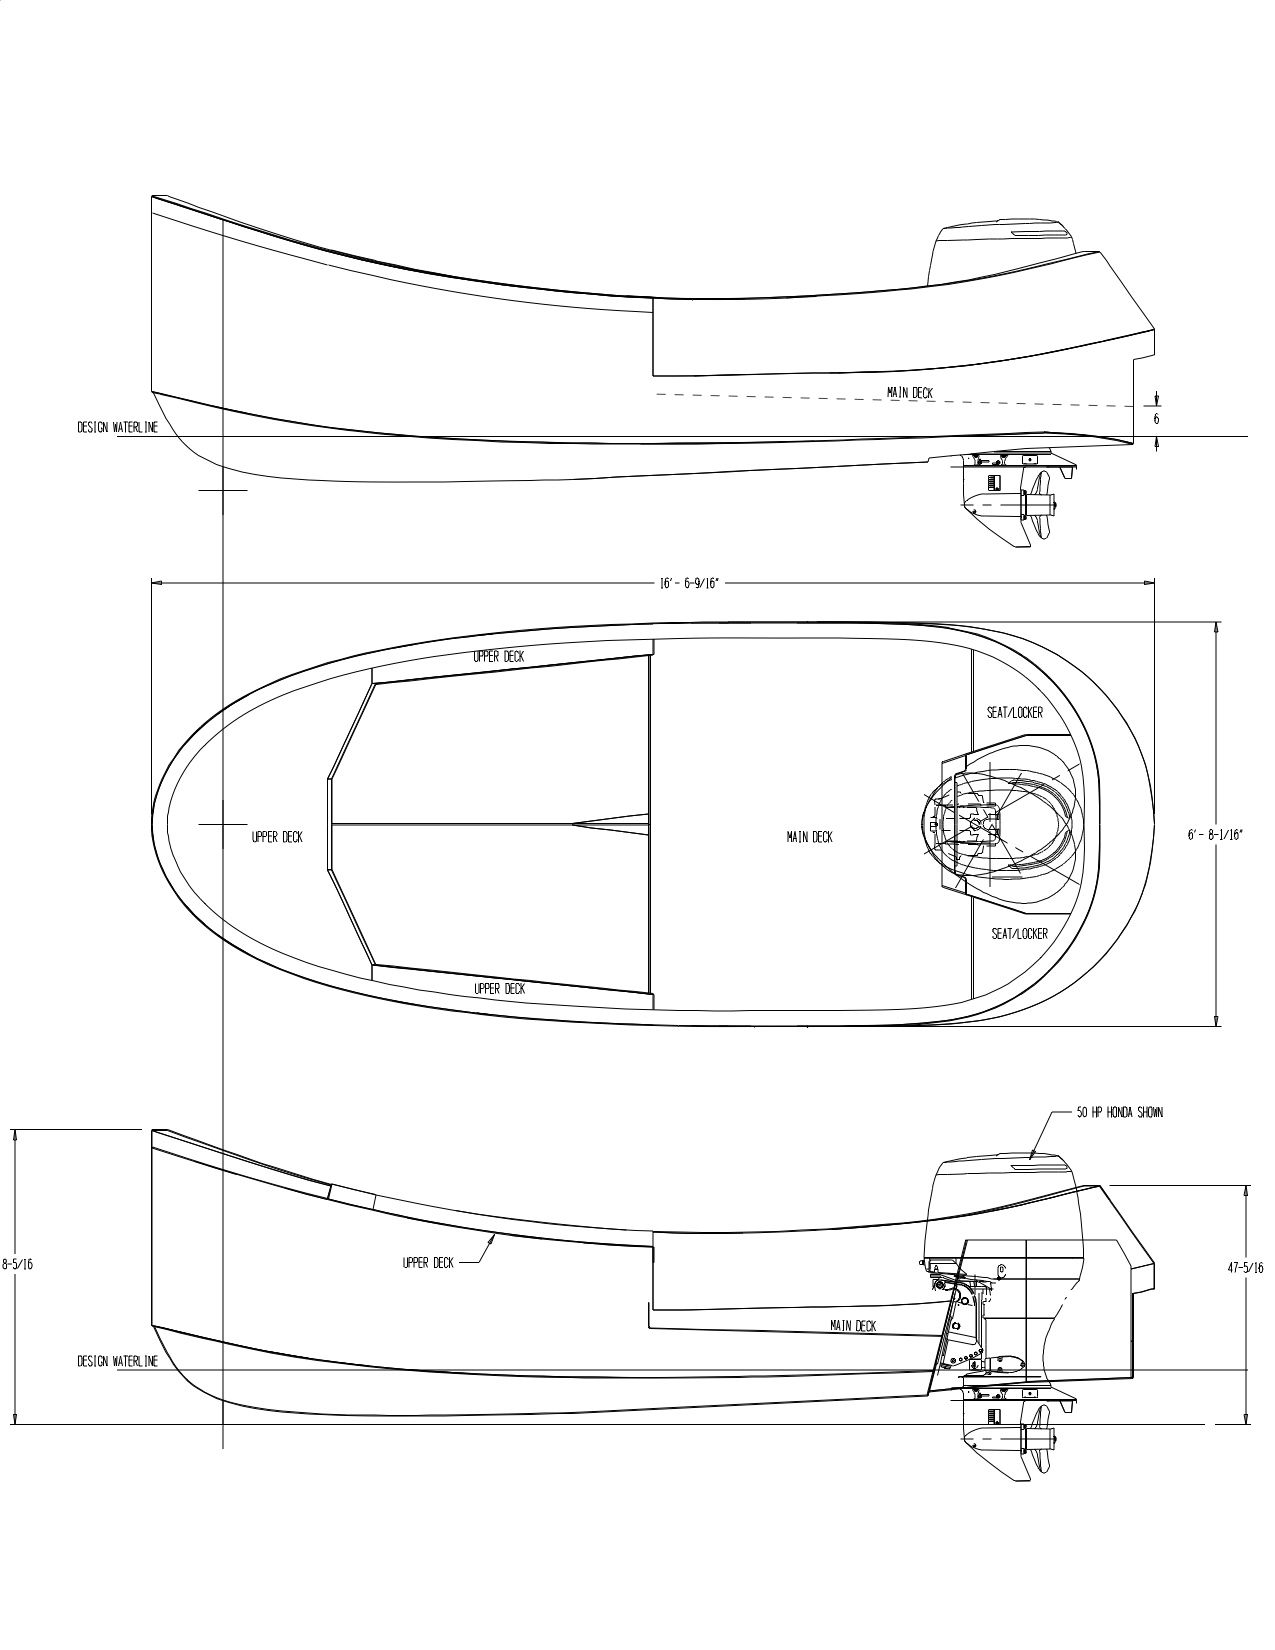 Trailerable Houseboat Plans | aluminum boat, aluminum fishing boat, aluminum  tugboat, mini tugboat